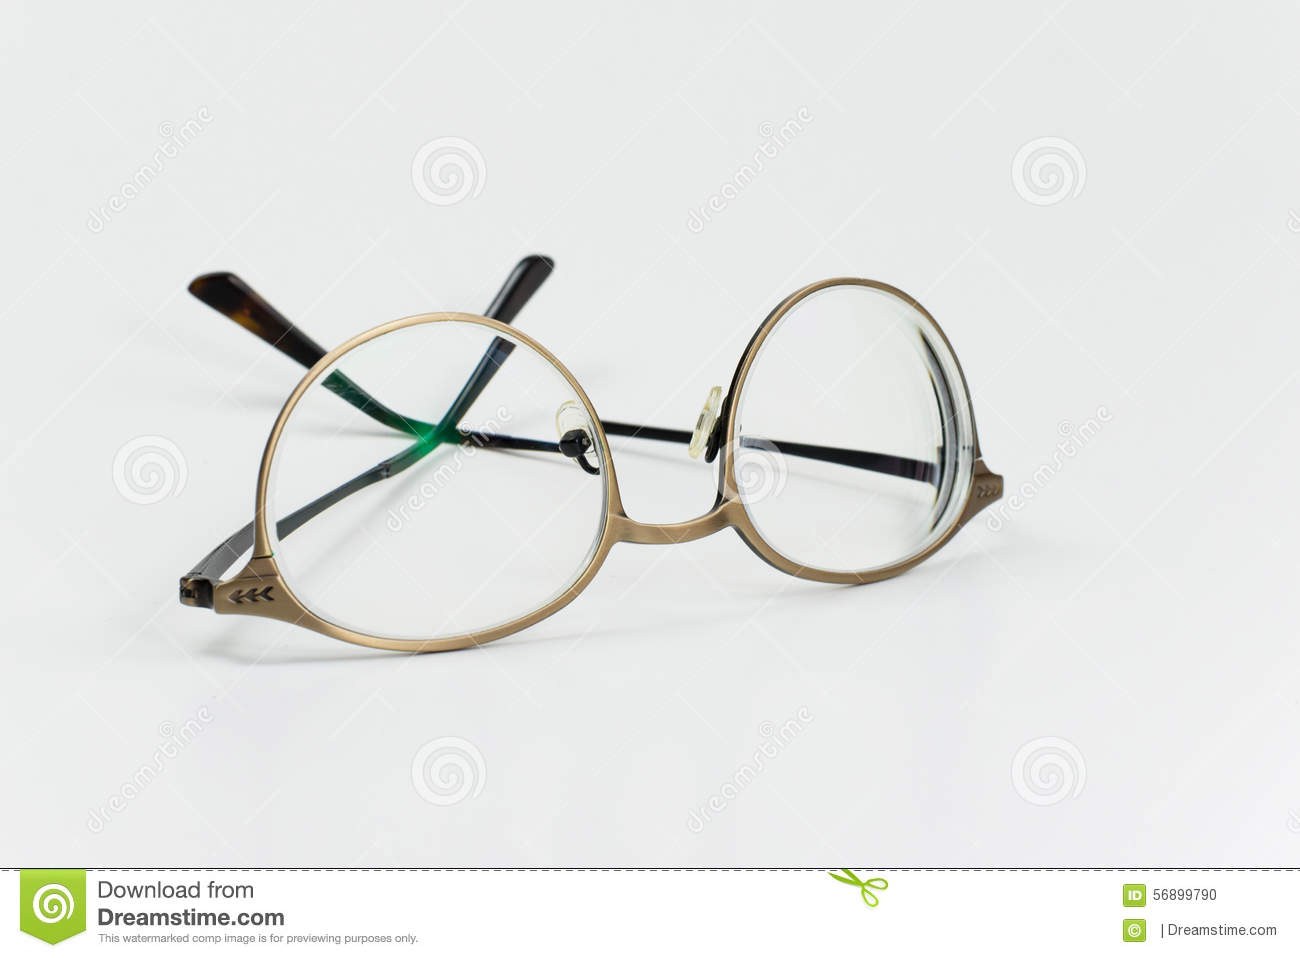 Glasses Frame Help : Eyeglasses Stock Photo - Image: 56899790